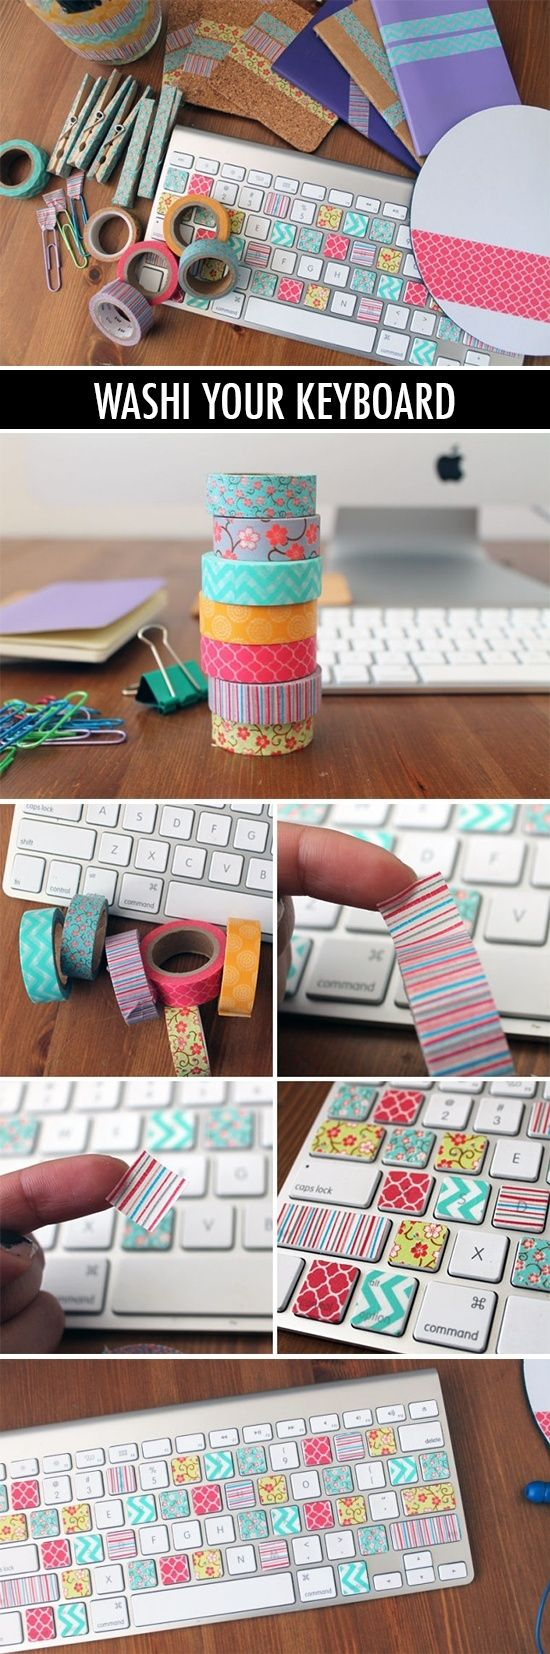 Going to try this!!! Just need some cute duck tape